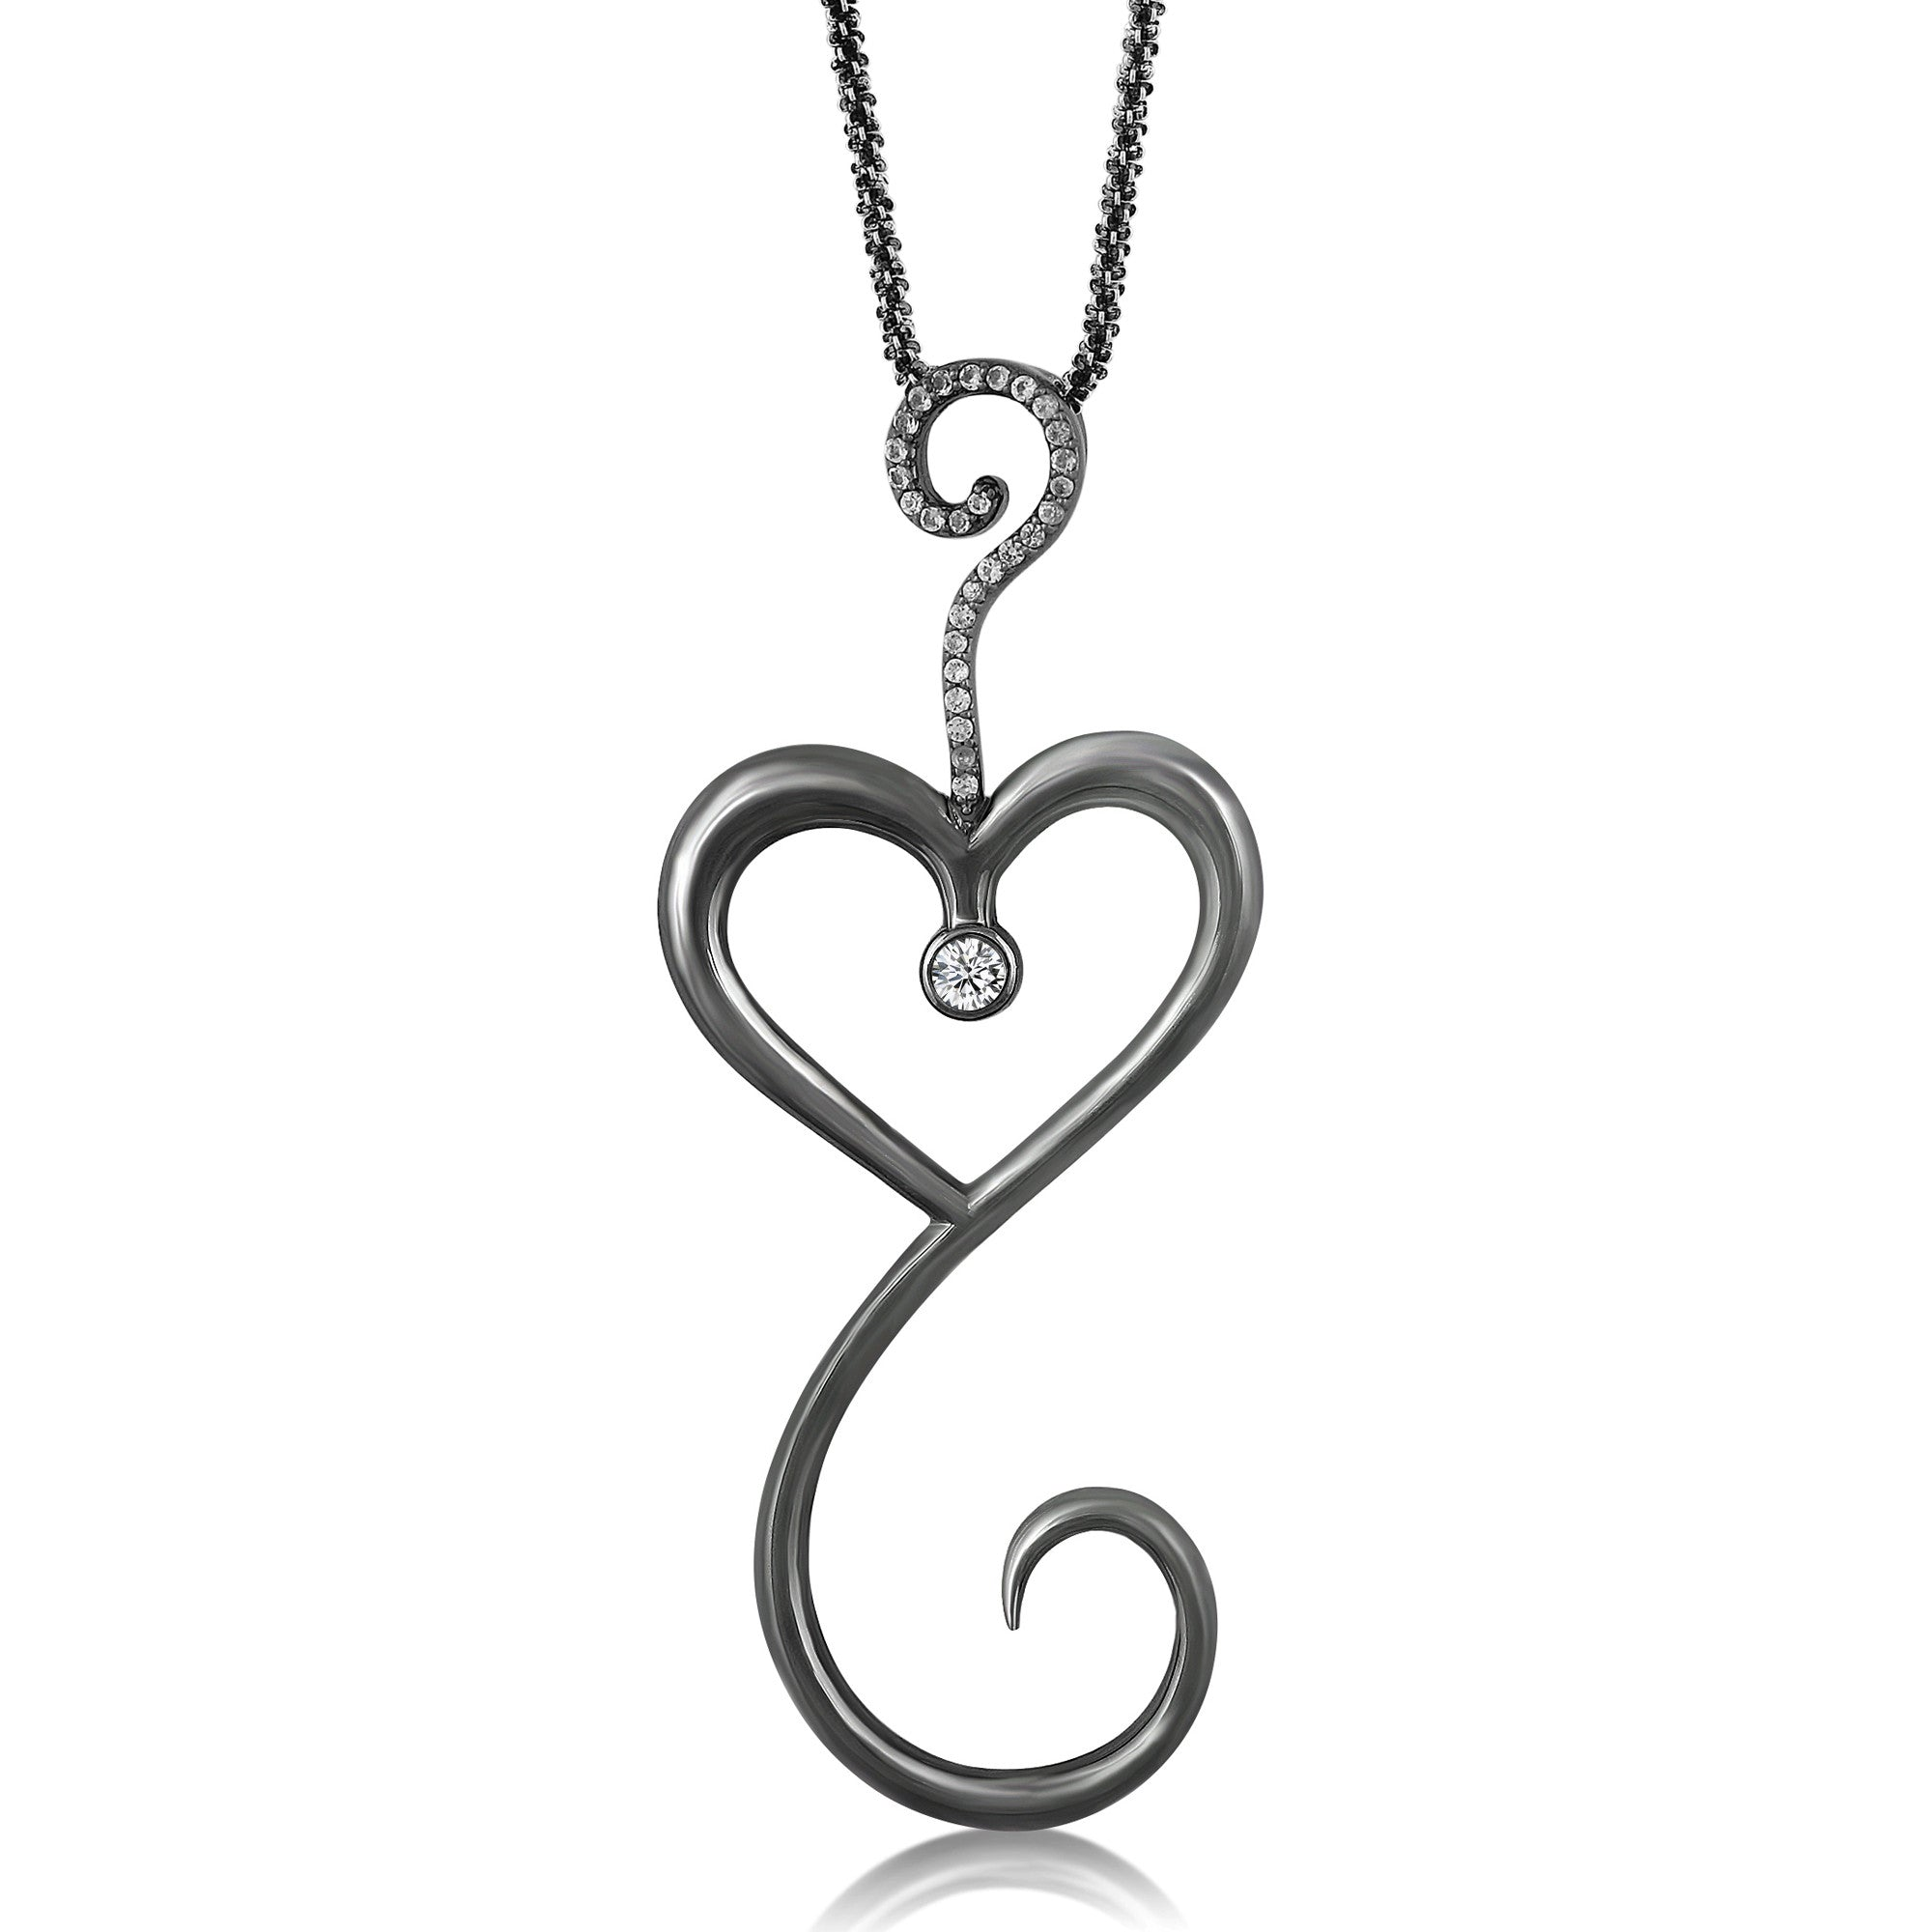 Intrikit Heart -Solid Sterling Silver .925 with a Black Rhodium finish and a White Topaz Pave and 3mm Sapphire Center Stone